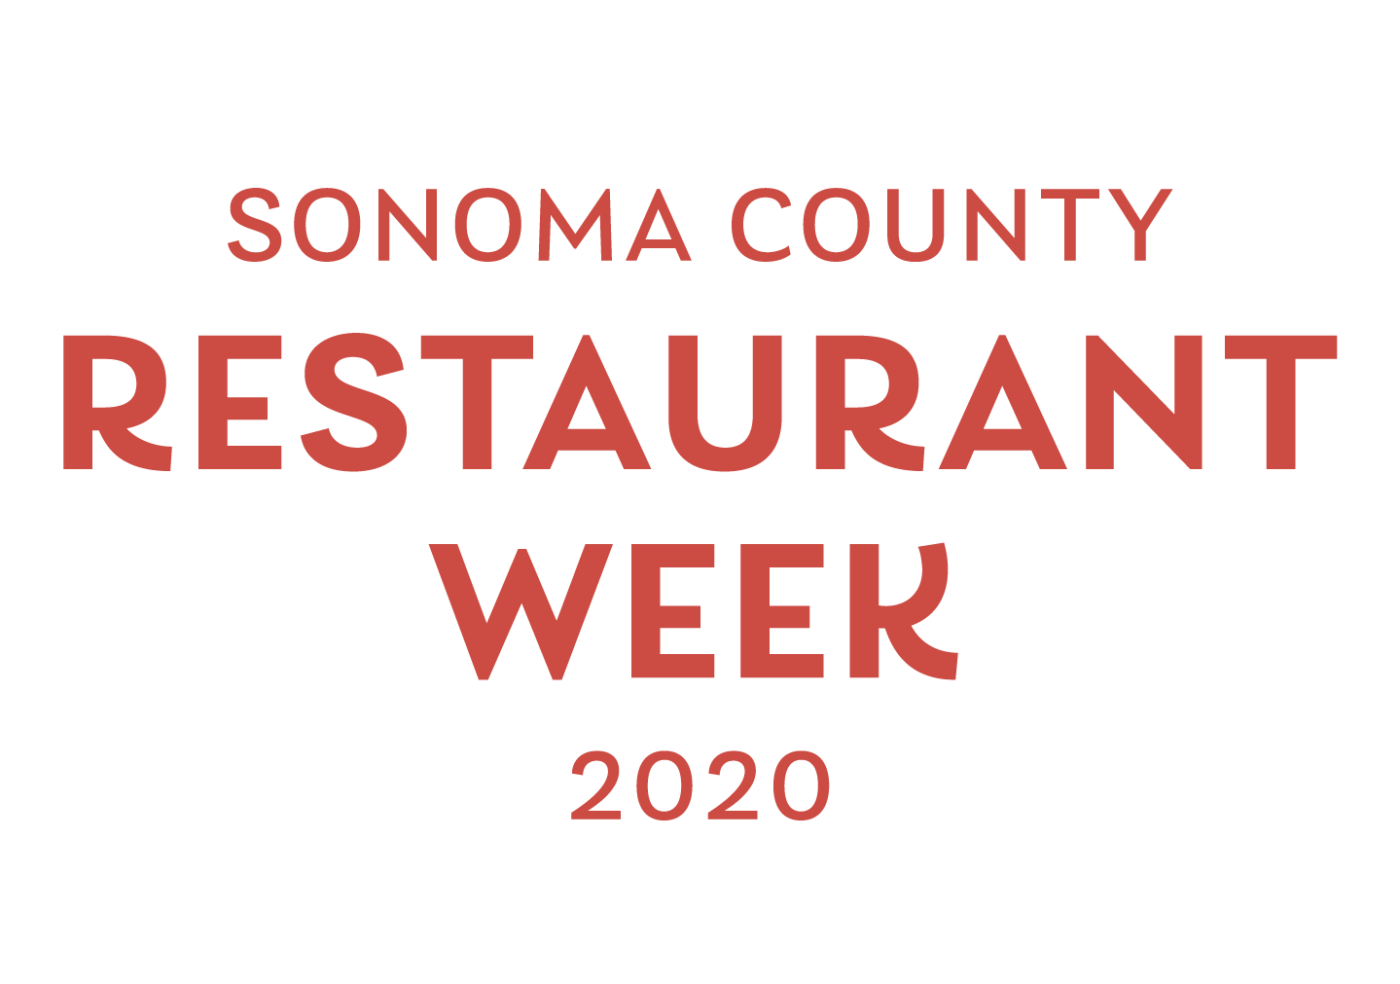 Sonoma County Restaurant Week 2020 logo